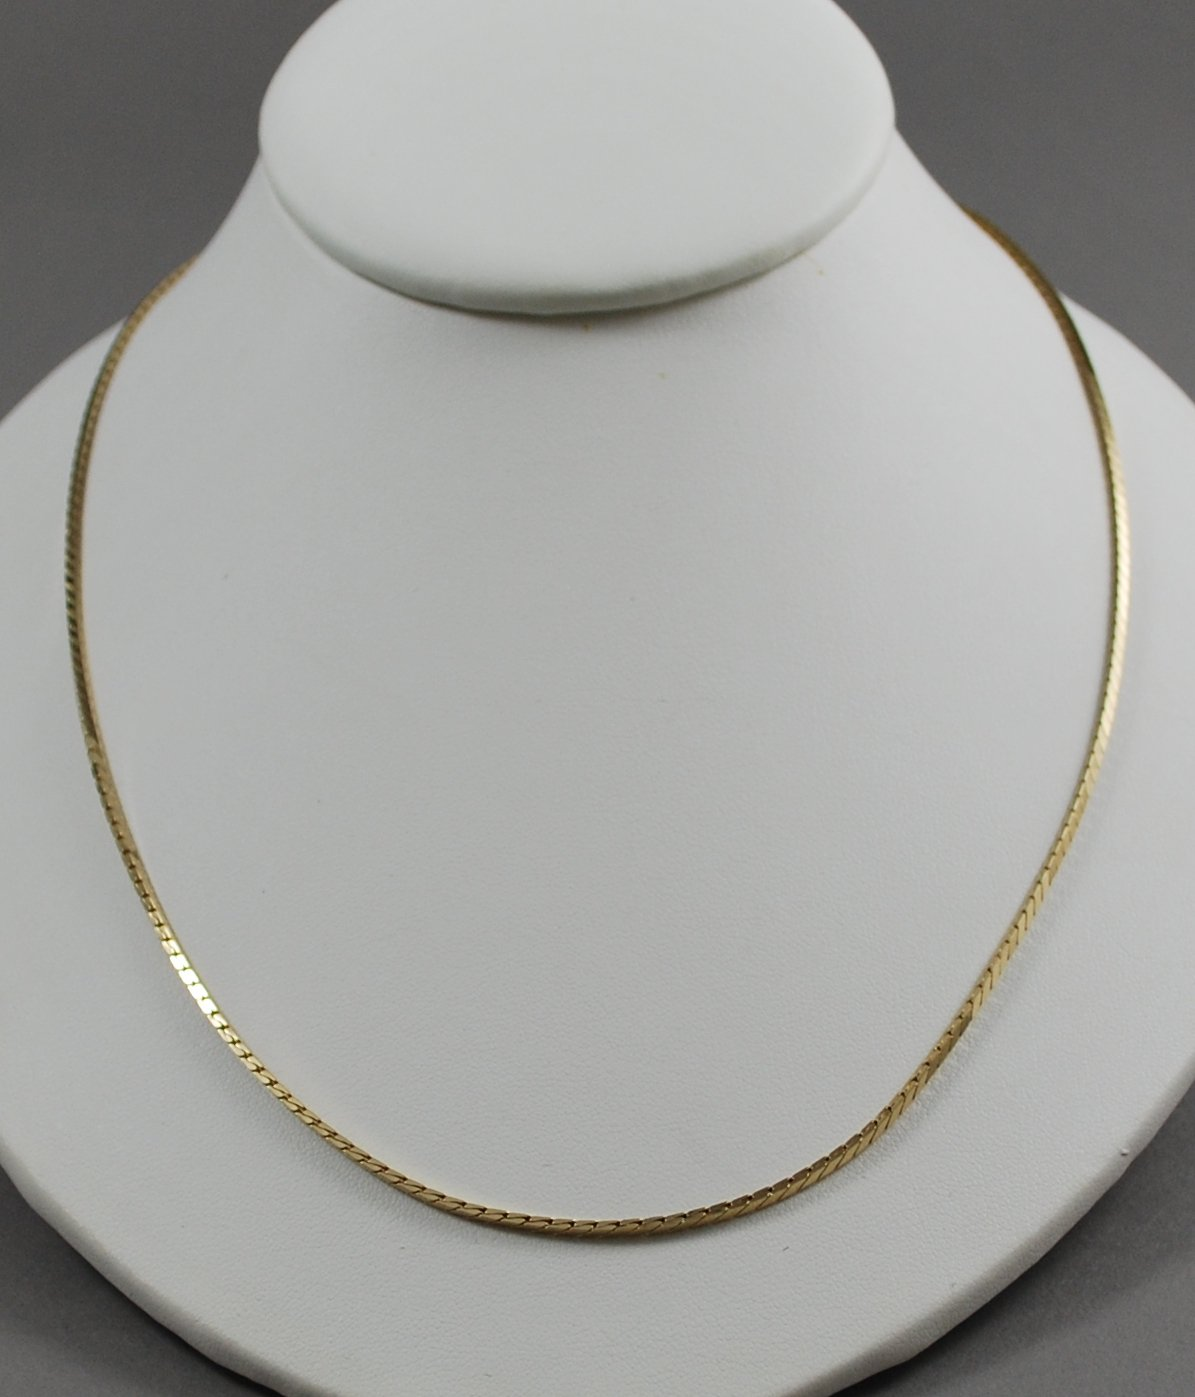 1983 Avon Polished Strands Neckchain in Goldtone